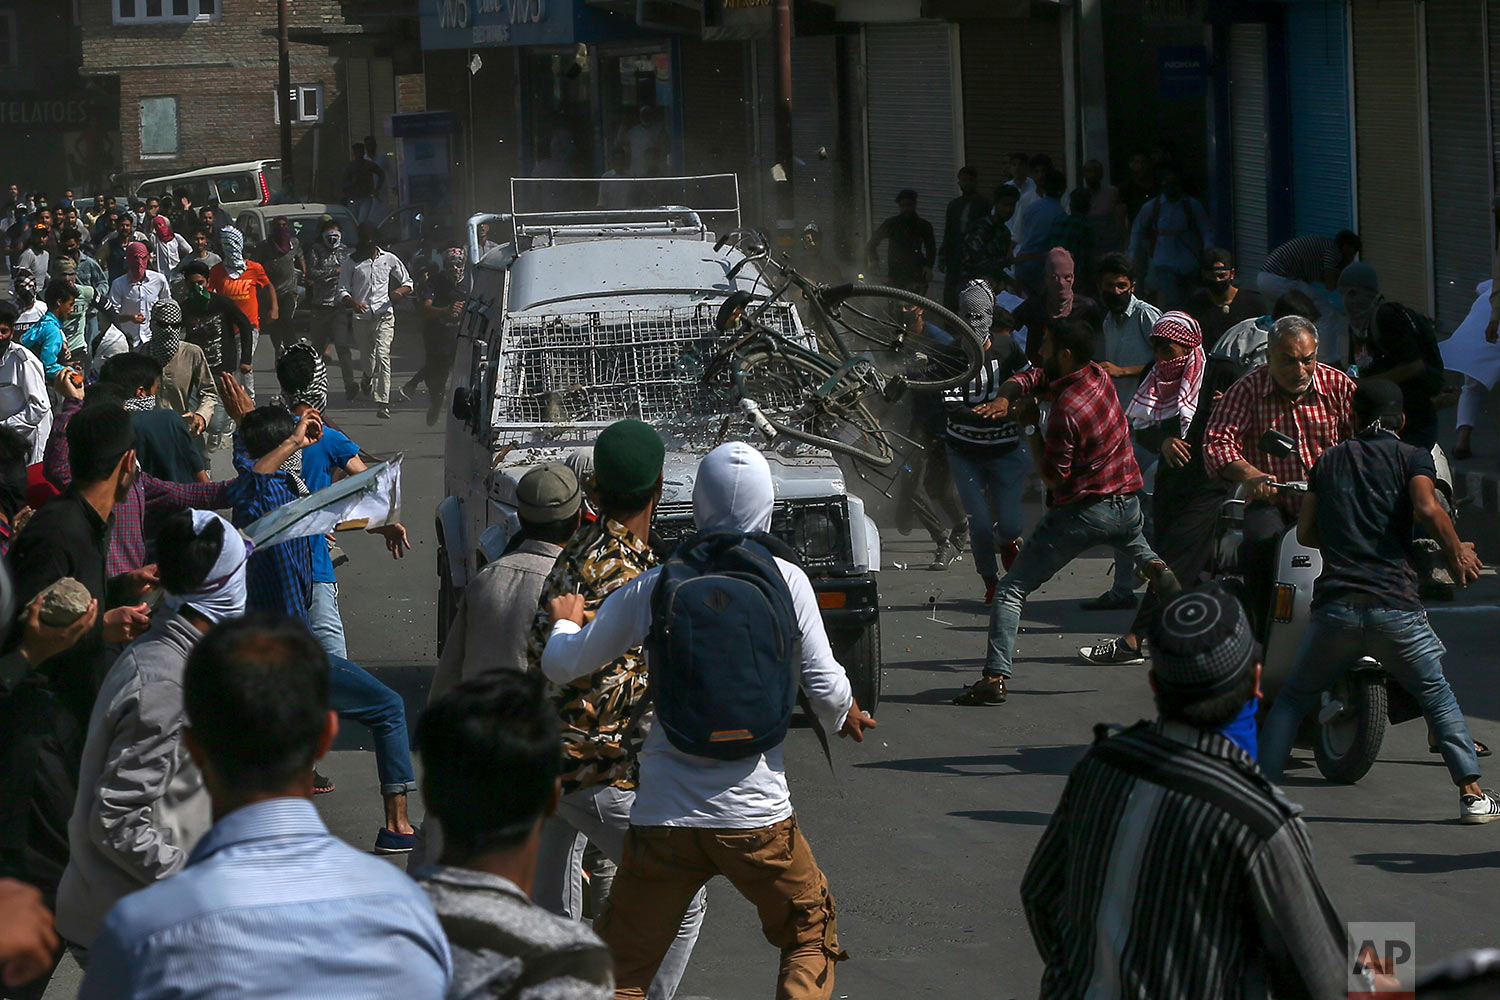 Kashmiri Protesters throw rocks, bricks and a cycle on an Indian paramilitary vehicle in Srinagar, Indian controlled Kashmir, Friday, June 1, 2018. (AP Photo/Dar Yasin)